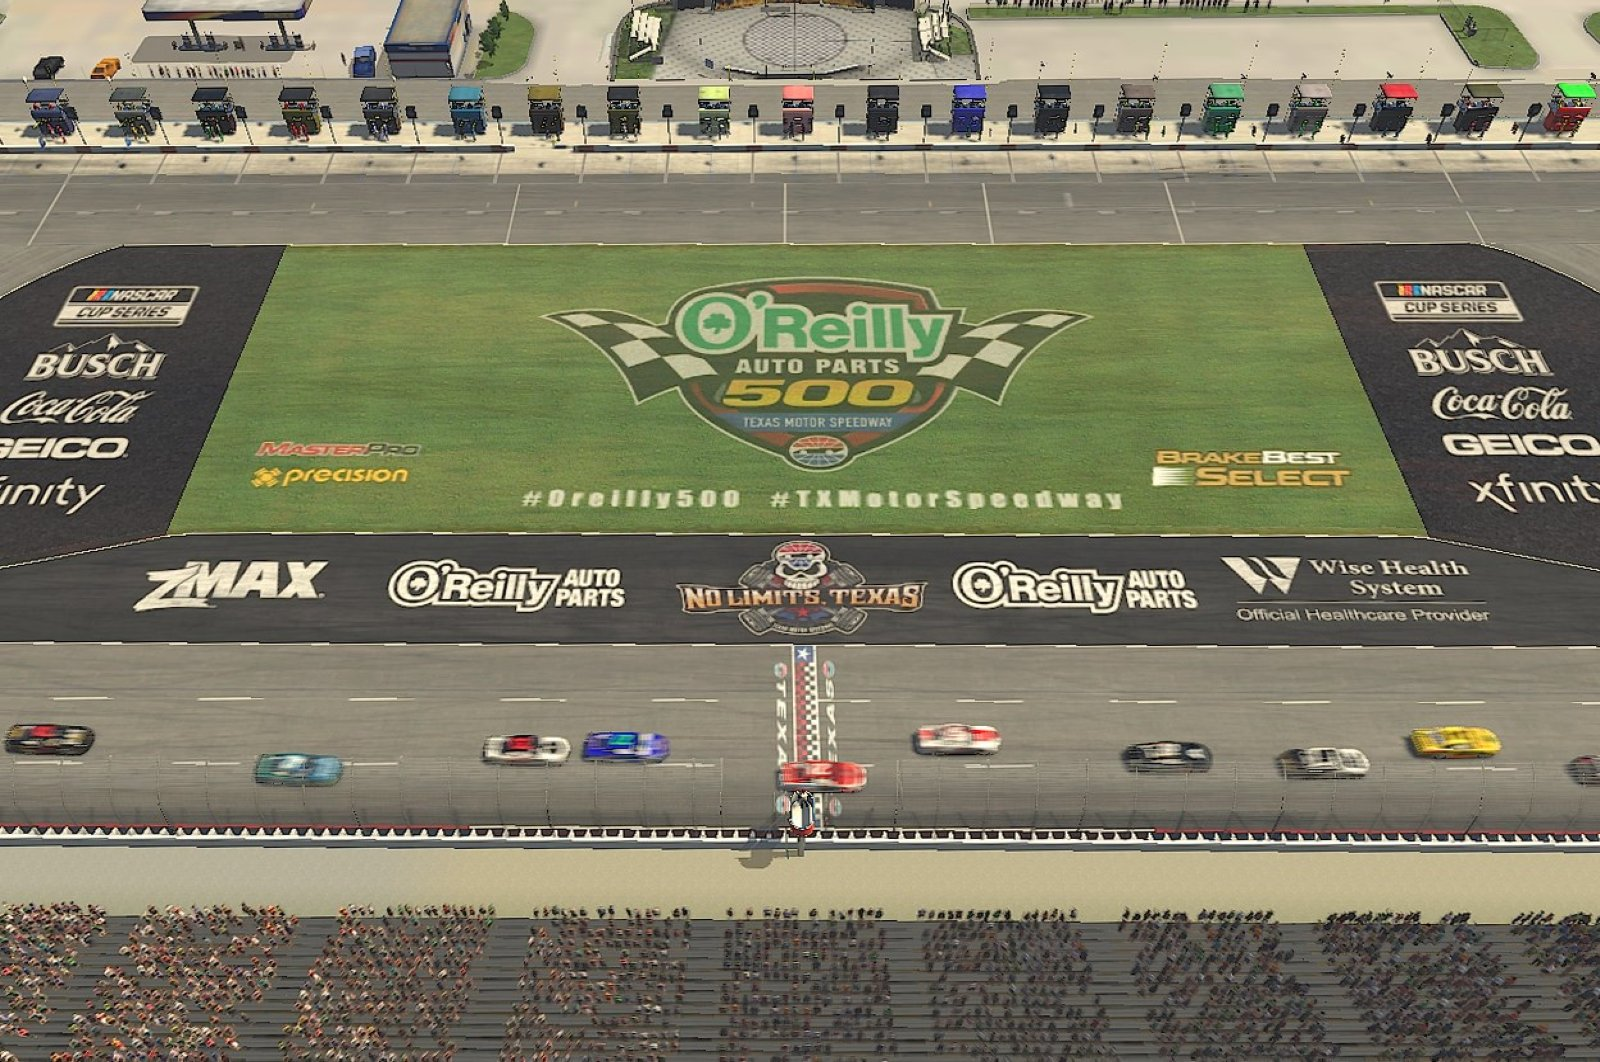 Cars race during the eNASCAR iRacing Pro Invitational Series Race O'Reilly Auto Parts 125 at virtual Texas Motor Speedway in Fort Worth, Texas, March 29, 2020. (AFP Photo)